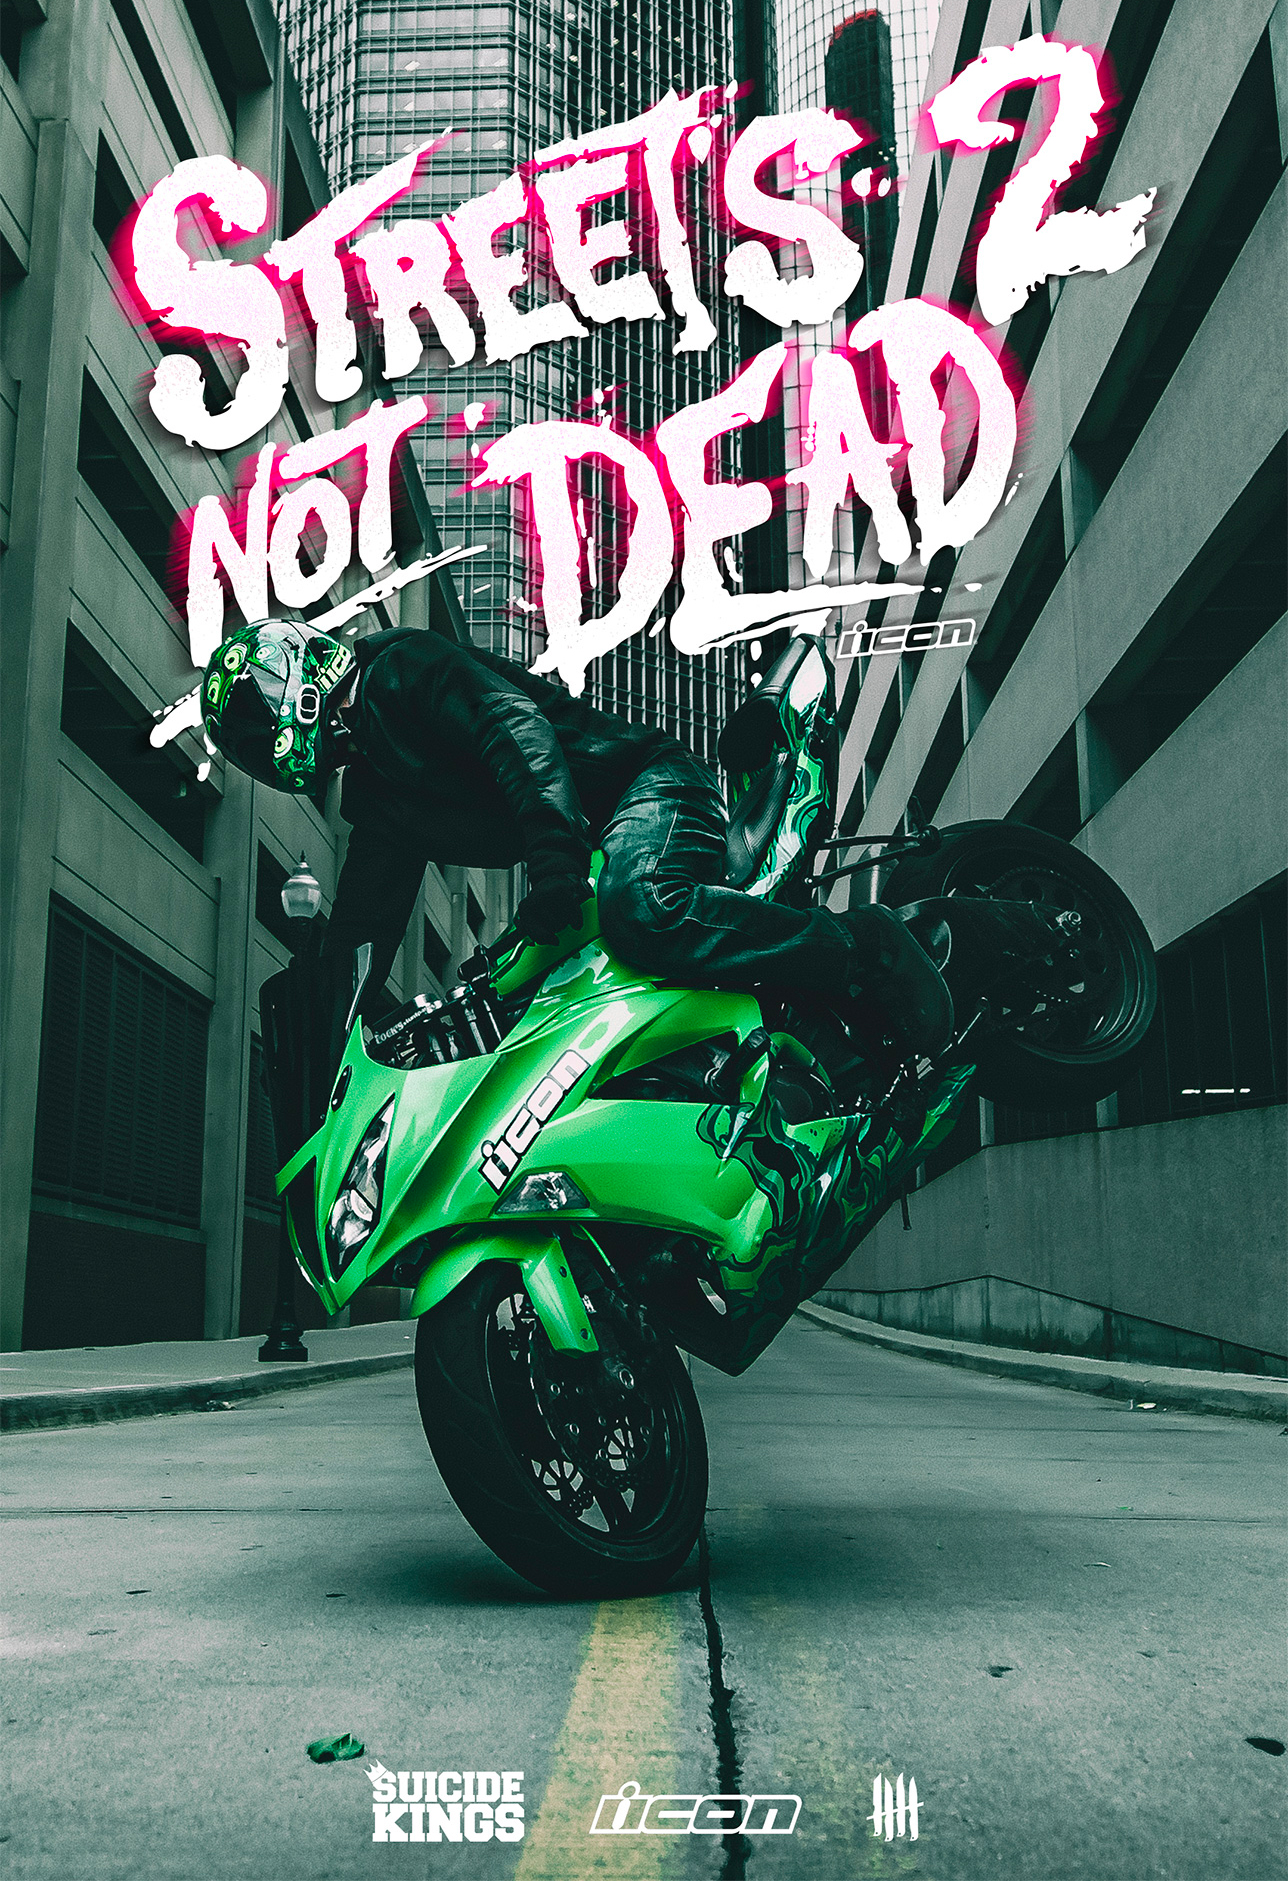 Streets 2 Not Dead, Knives Out records x Icon Motosports x Suicide Kings x Kyle Sliger